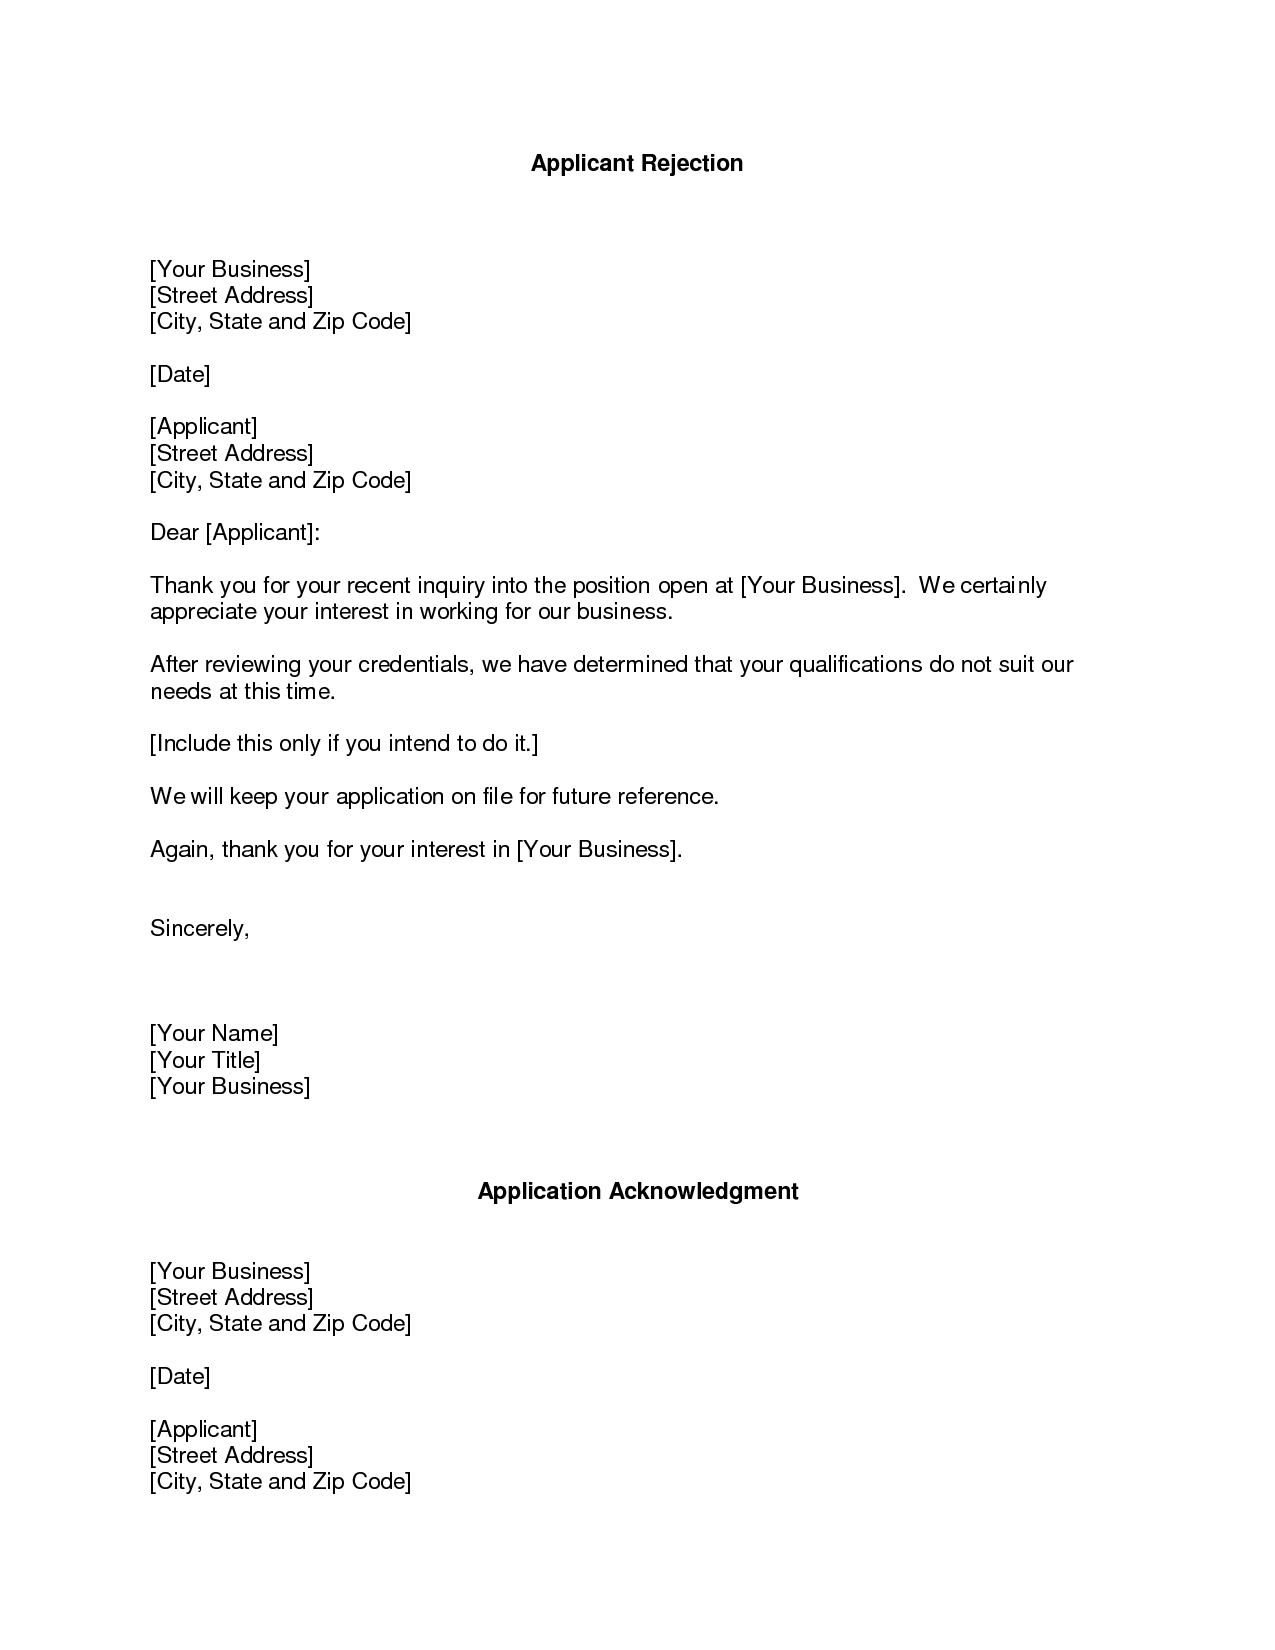 Business rejection letter the rejection letter format is similar business rejection letter the rejection letter format is similar to the business letter format and should be followed correctly thecheapjerseys Image collections